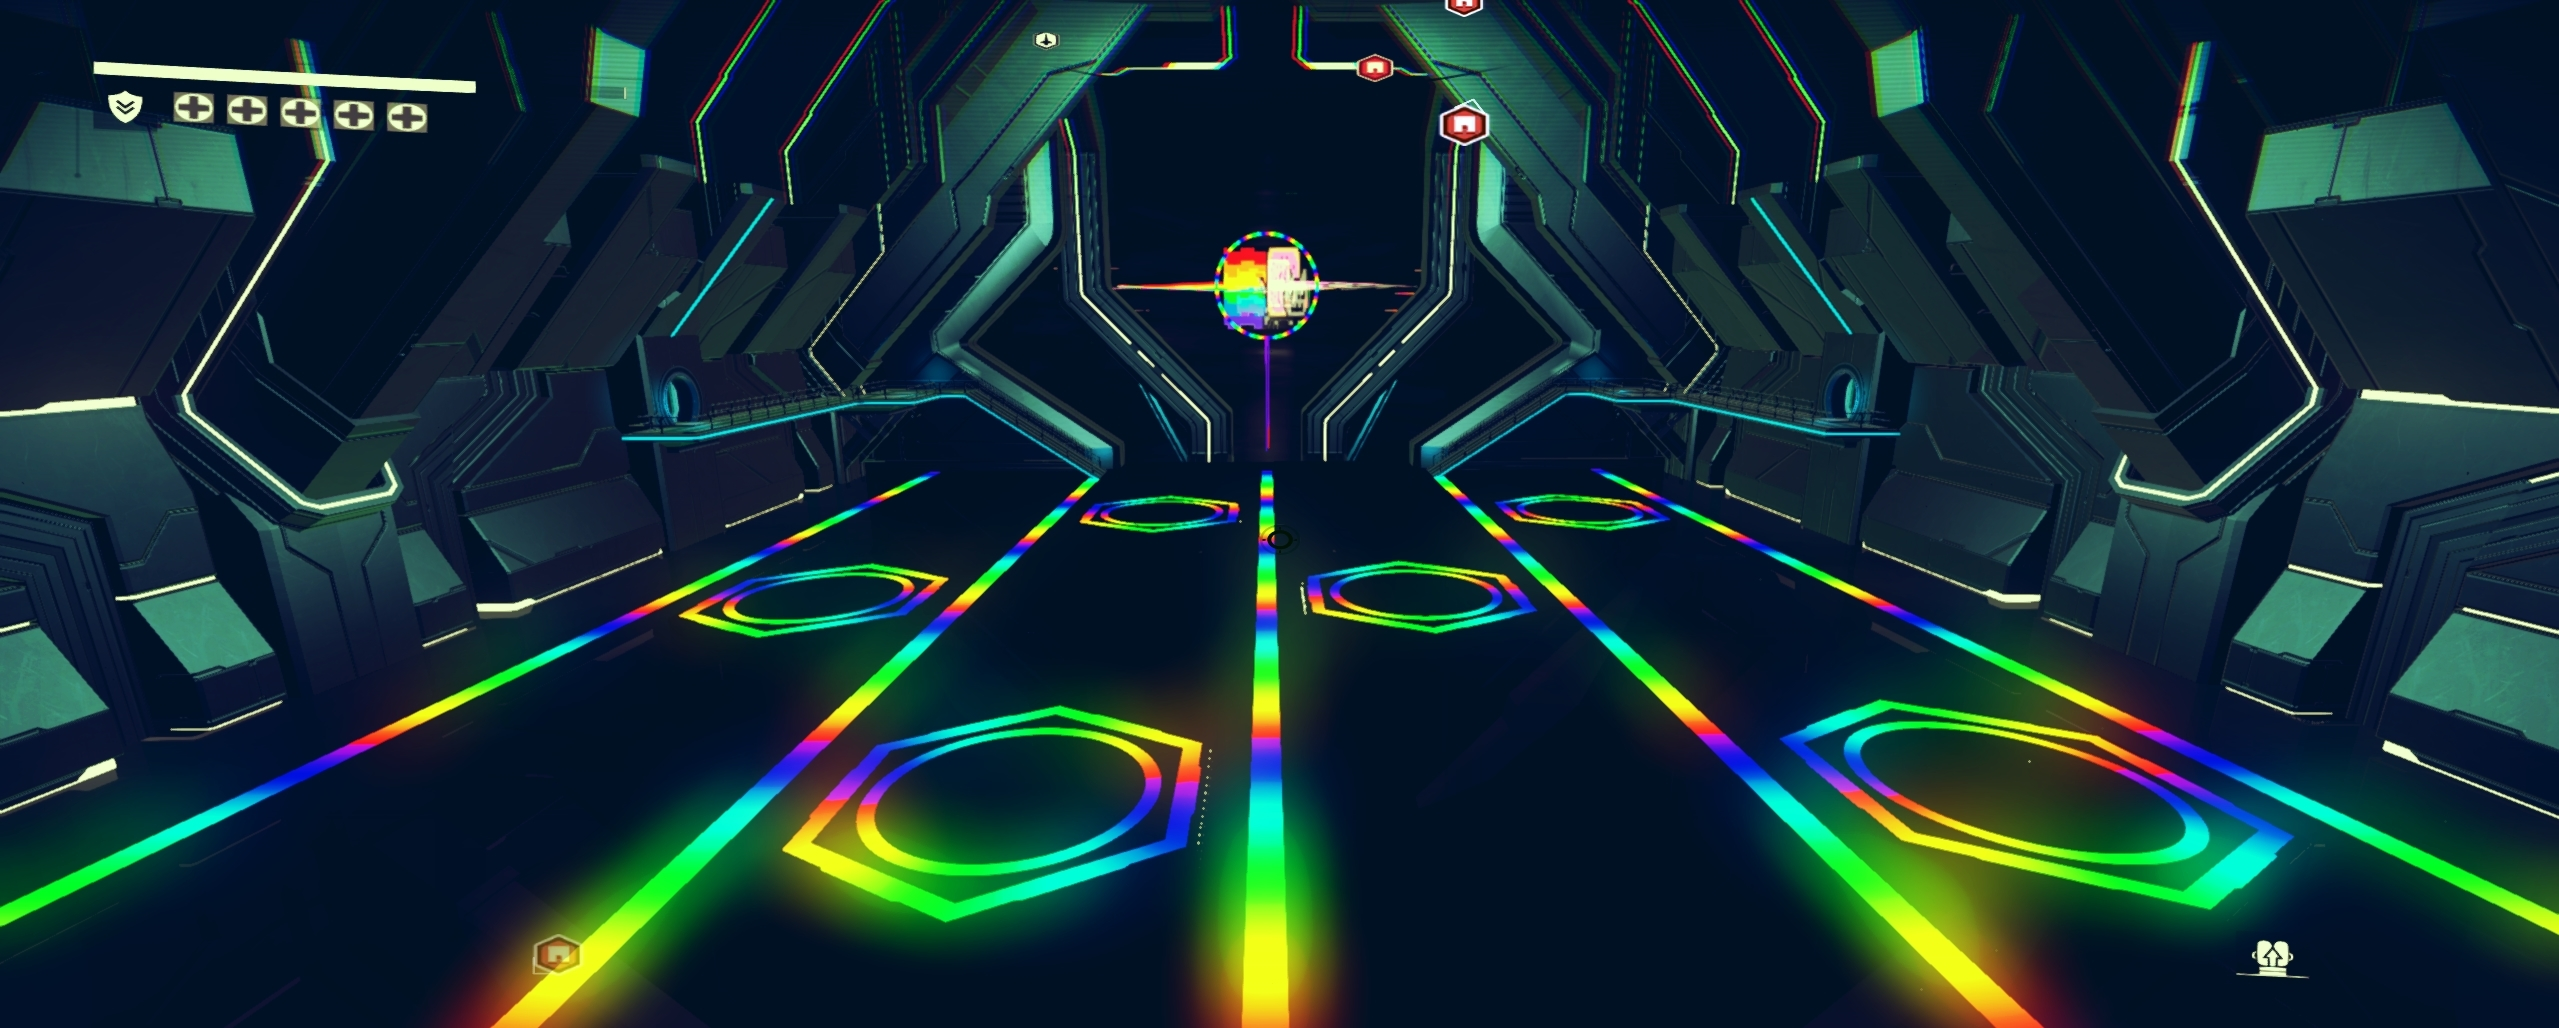 Nyan Cat Space Stations (UNPACKED)